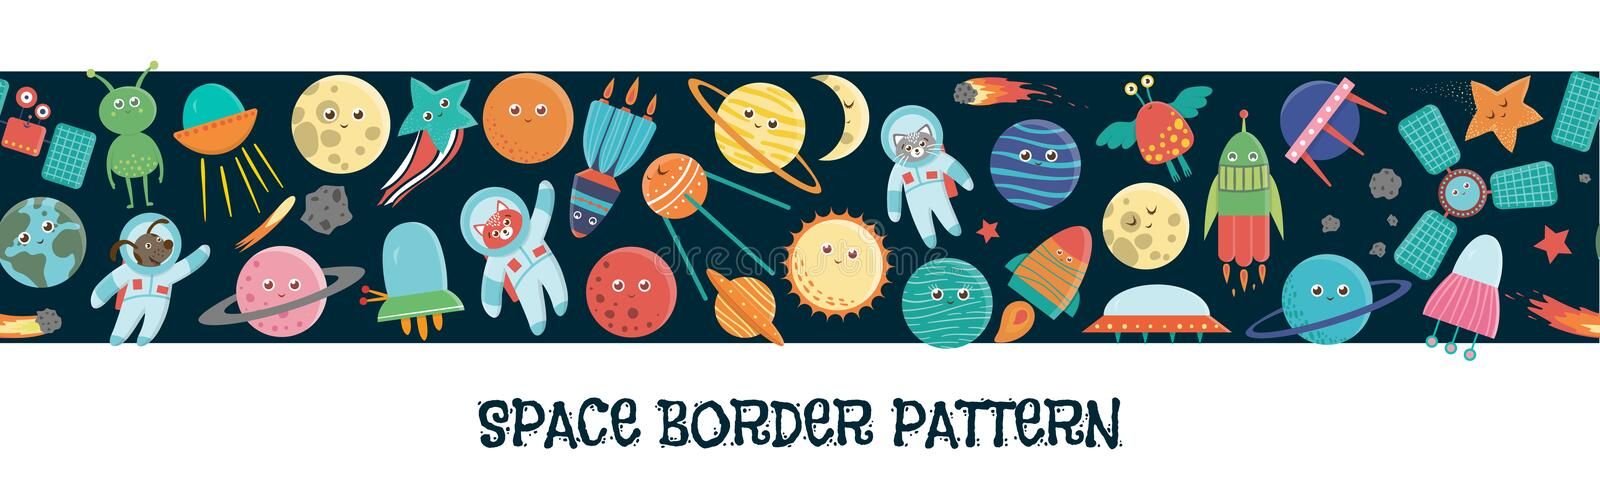 Vector space border pattern royalty free illustration